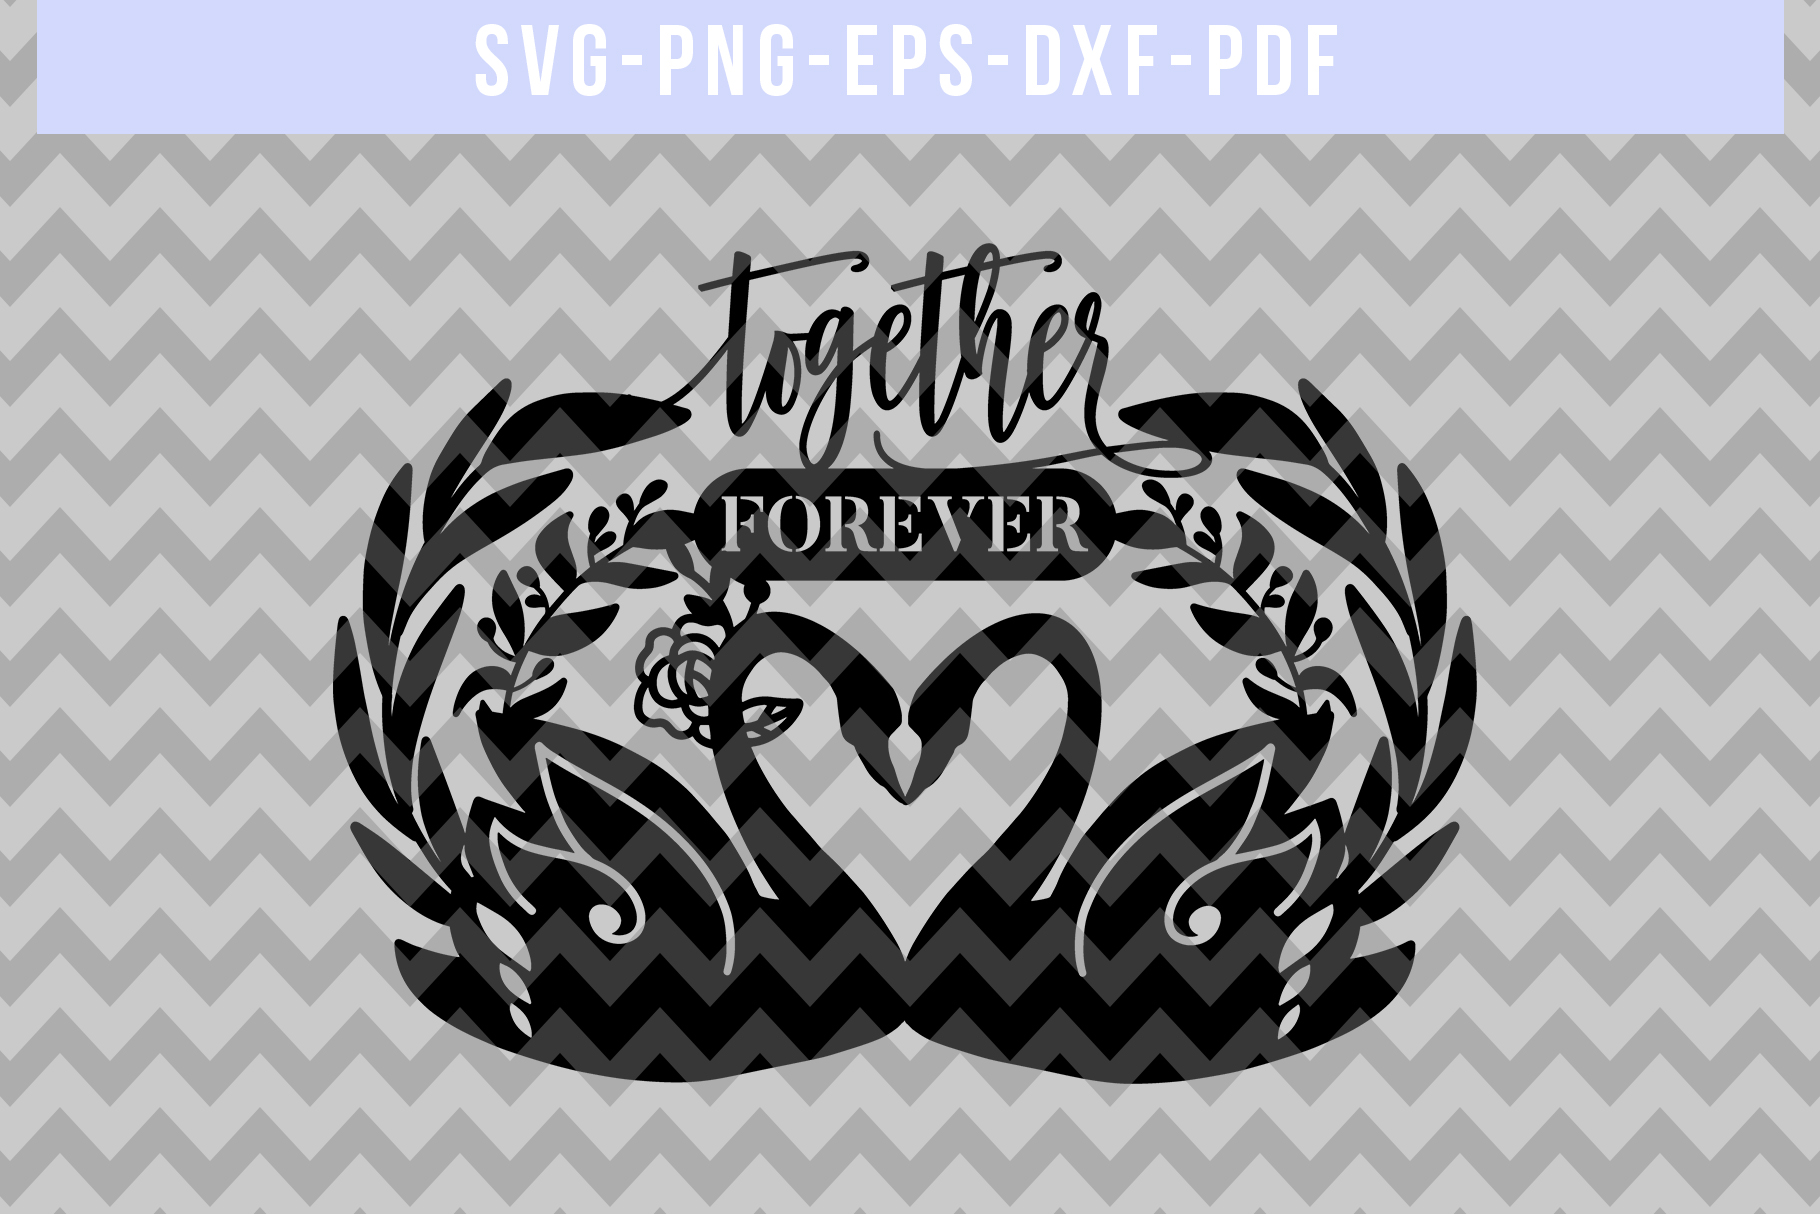 Together Forever Papercut Template, Swan Couple SVG, DXF PDF example image 4